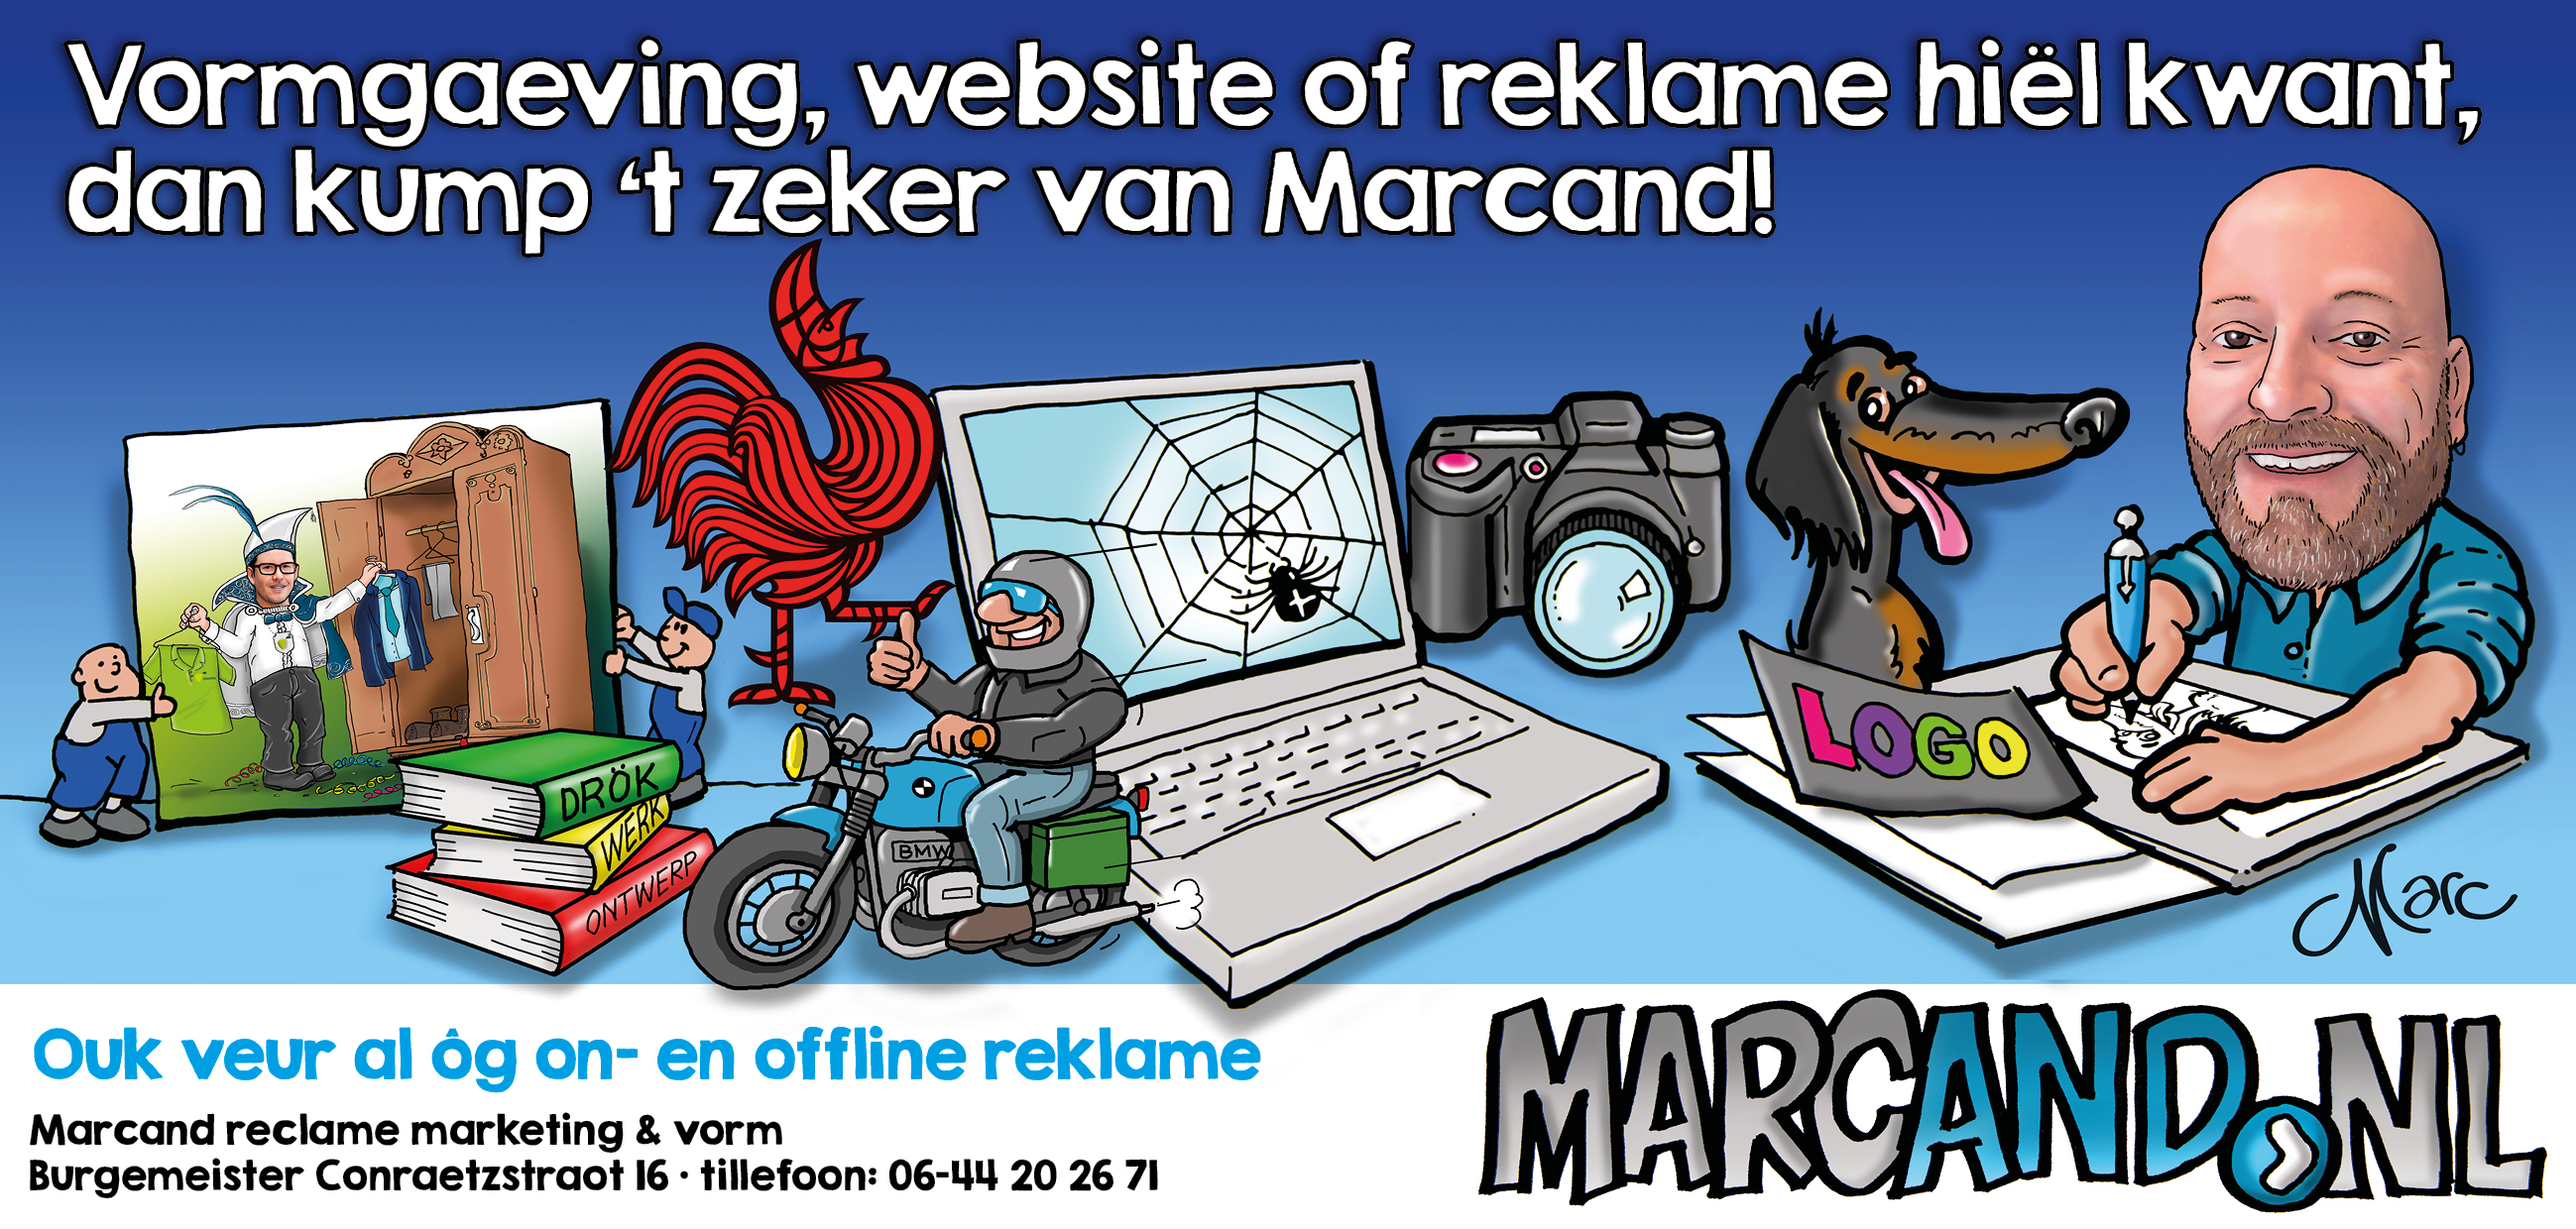 Traot adv marcand 2018 300